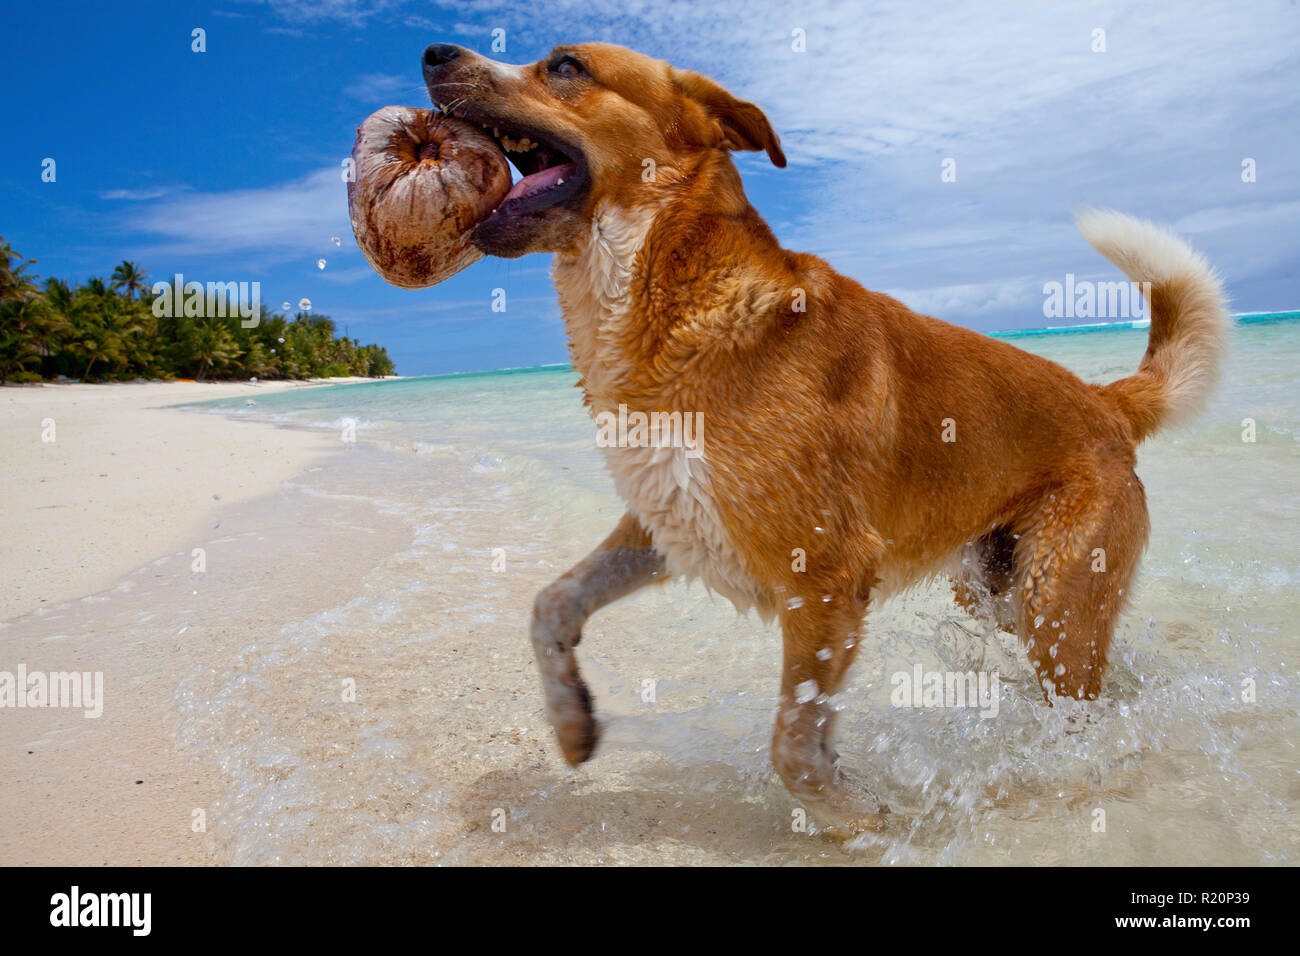 Dog playing fetch with a coconut on Rarotonga, Cook Islands. - Stock Image